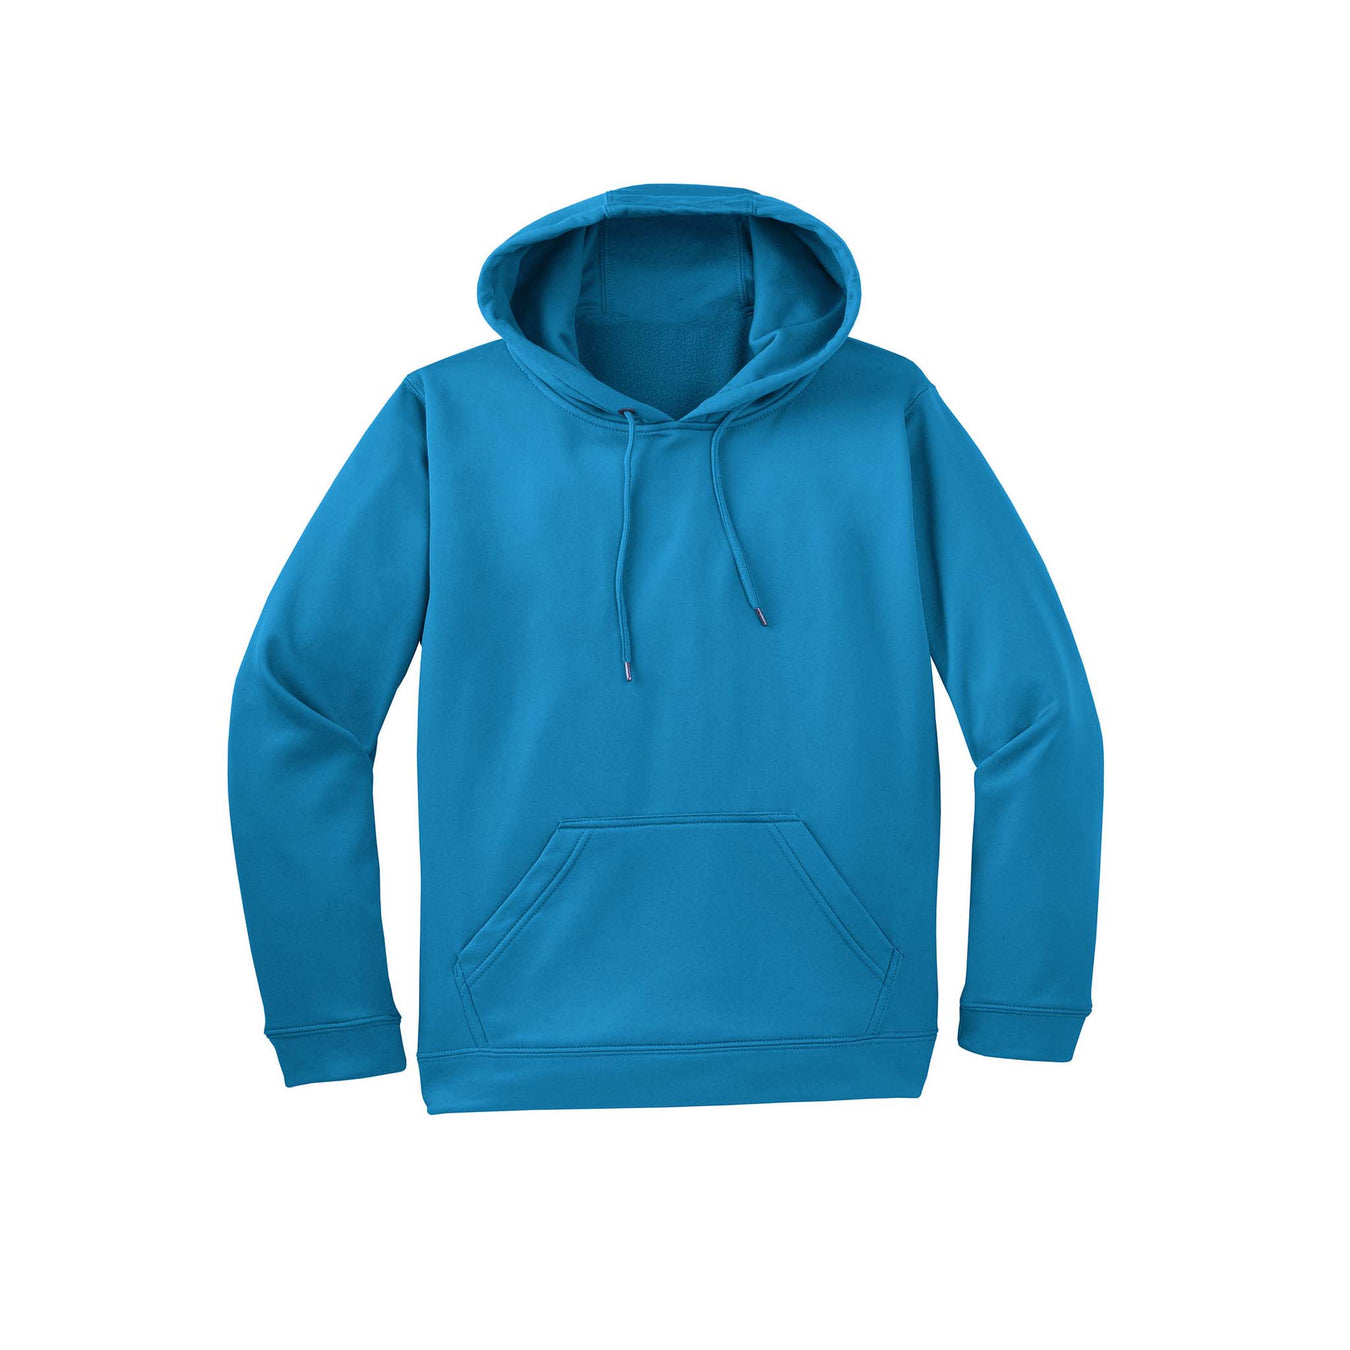 Men's Hoodies & Sweaters